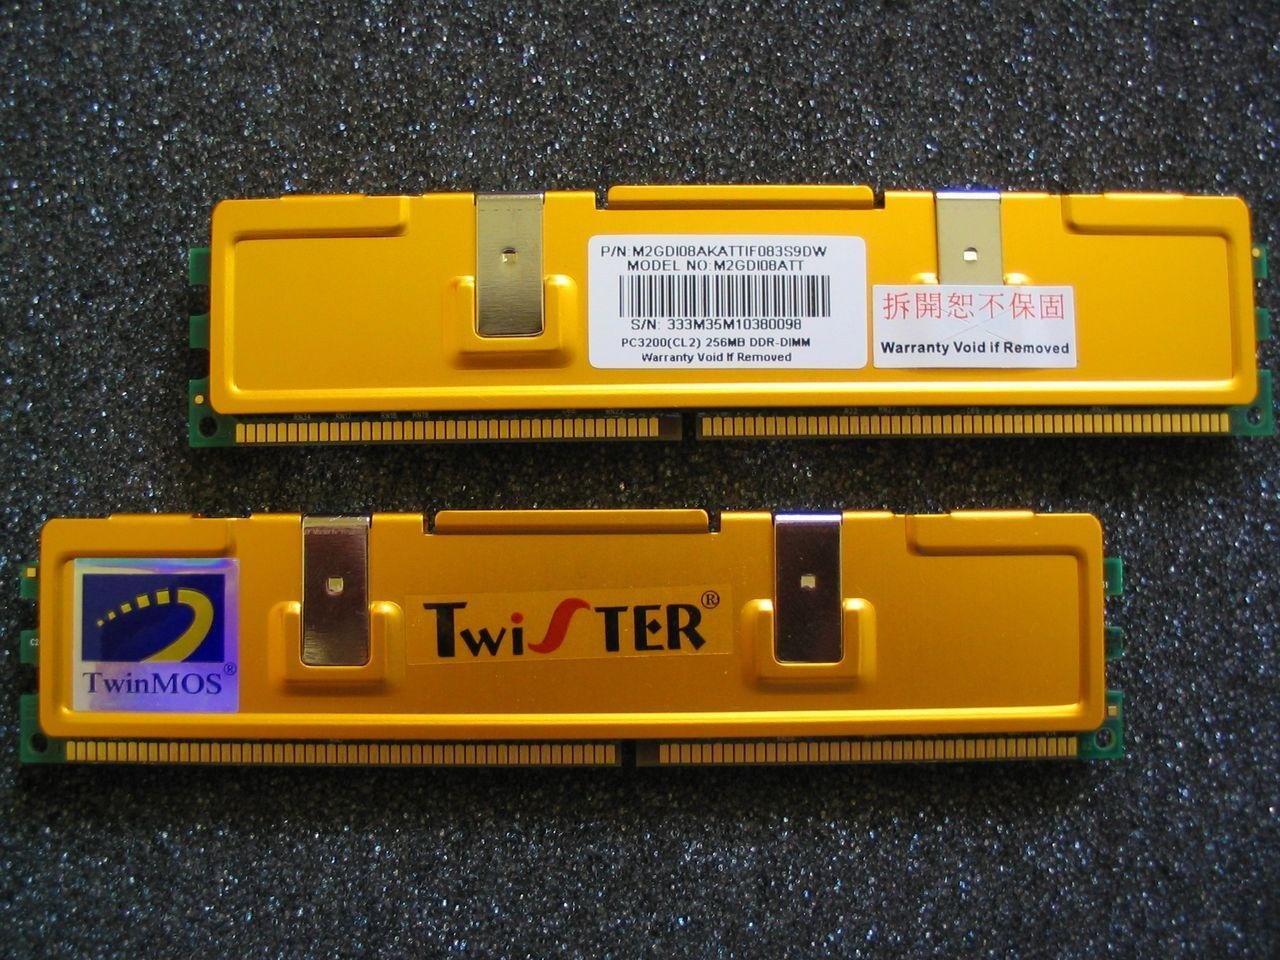 TwinMOS Twister PC3200 (CL2) 256 MB